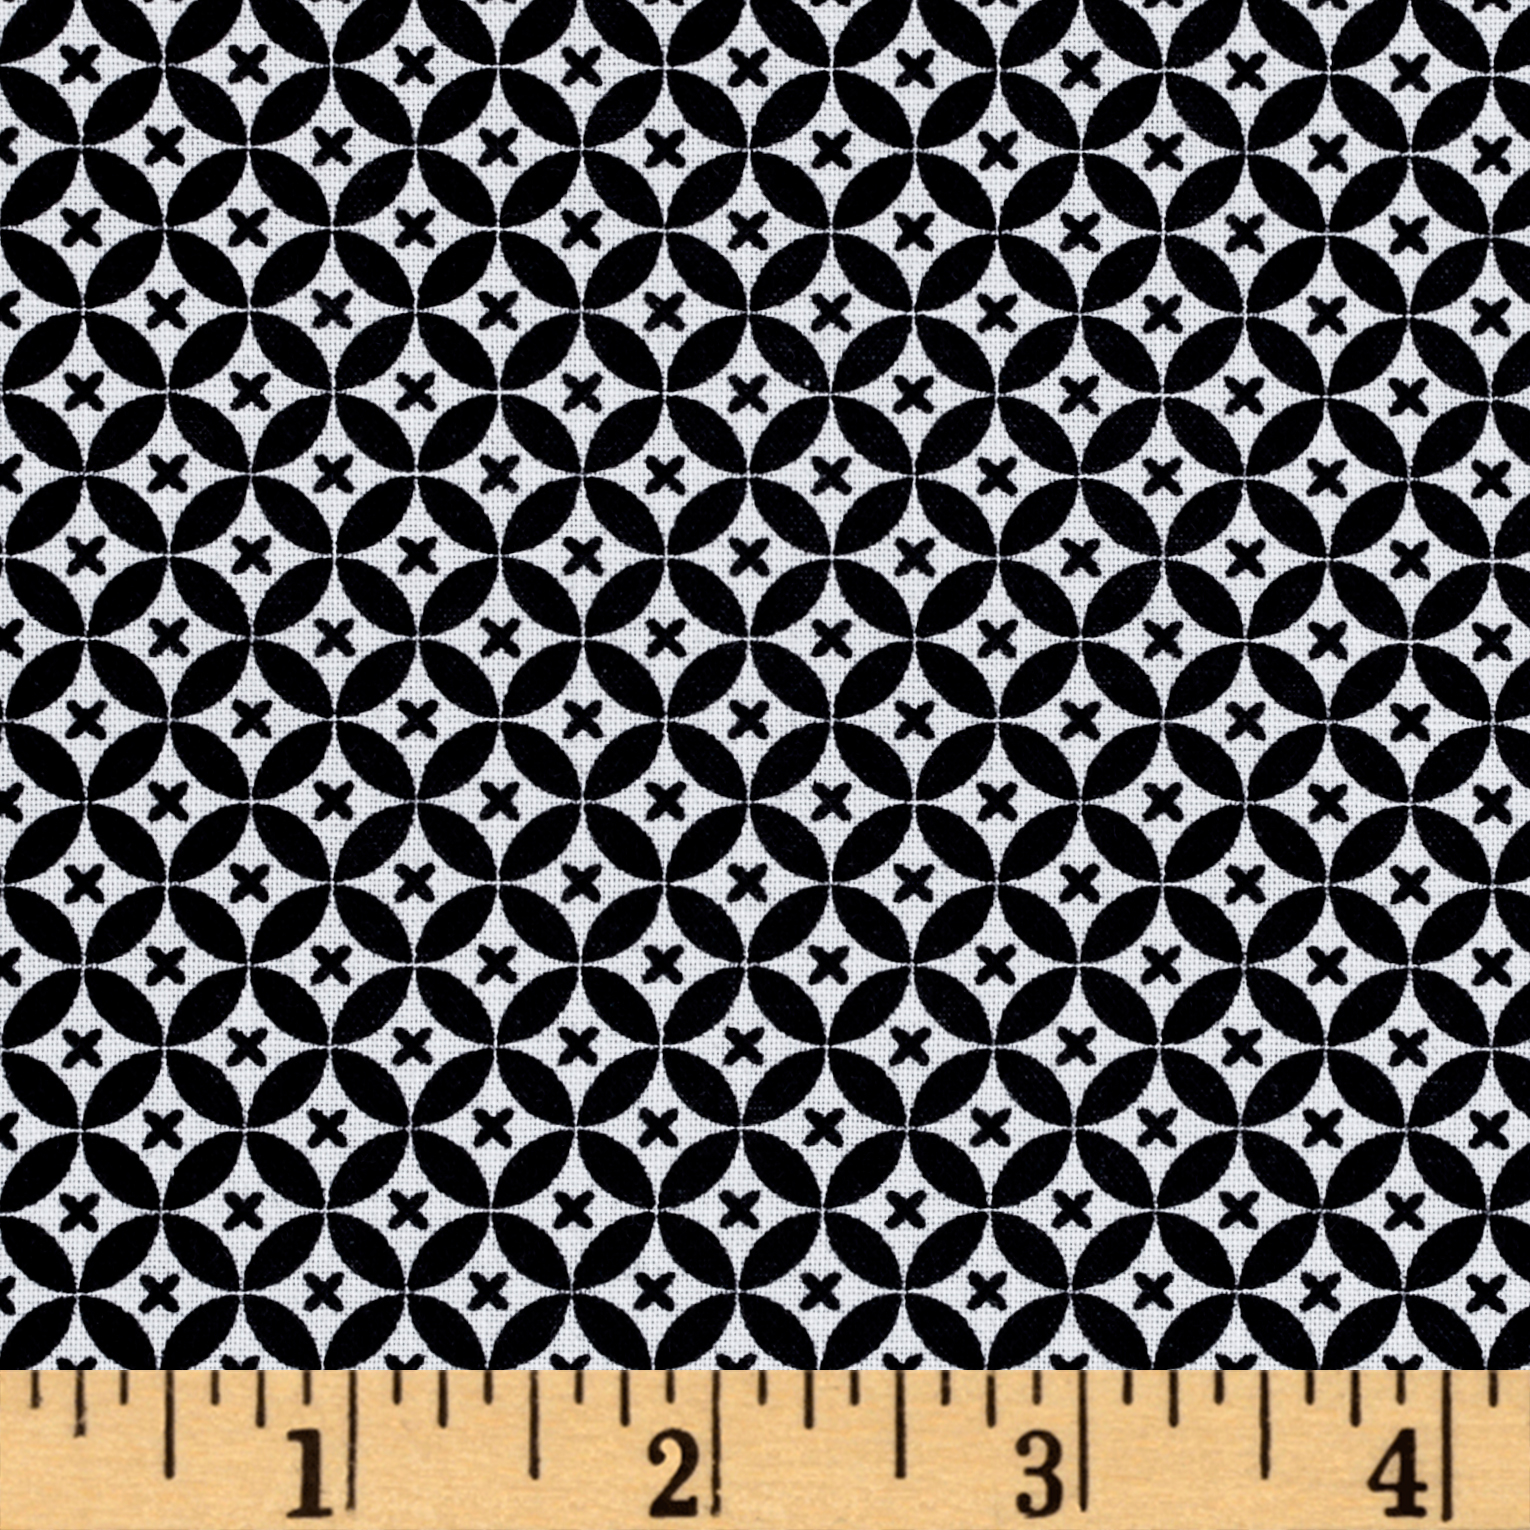 Odds And Ends XO Black On White Fabric by RJR in USA